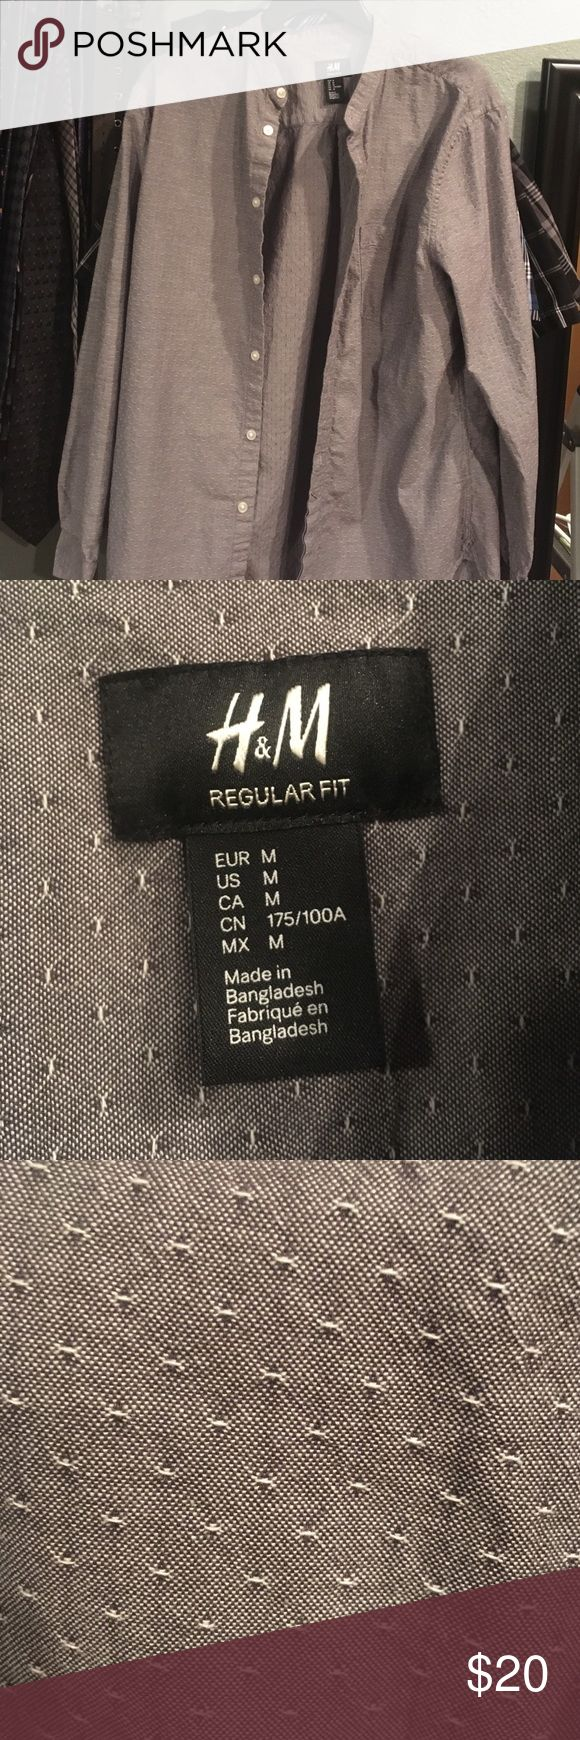 H&M Men's banded collar shirt Worn once for an occasion. Nice looking banded collar, unique pattern. Perfect Condition H&M Shirts Casual Button Down Shirts